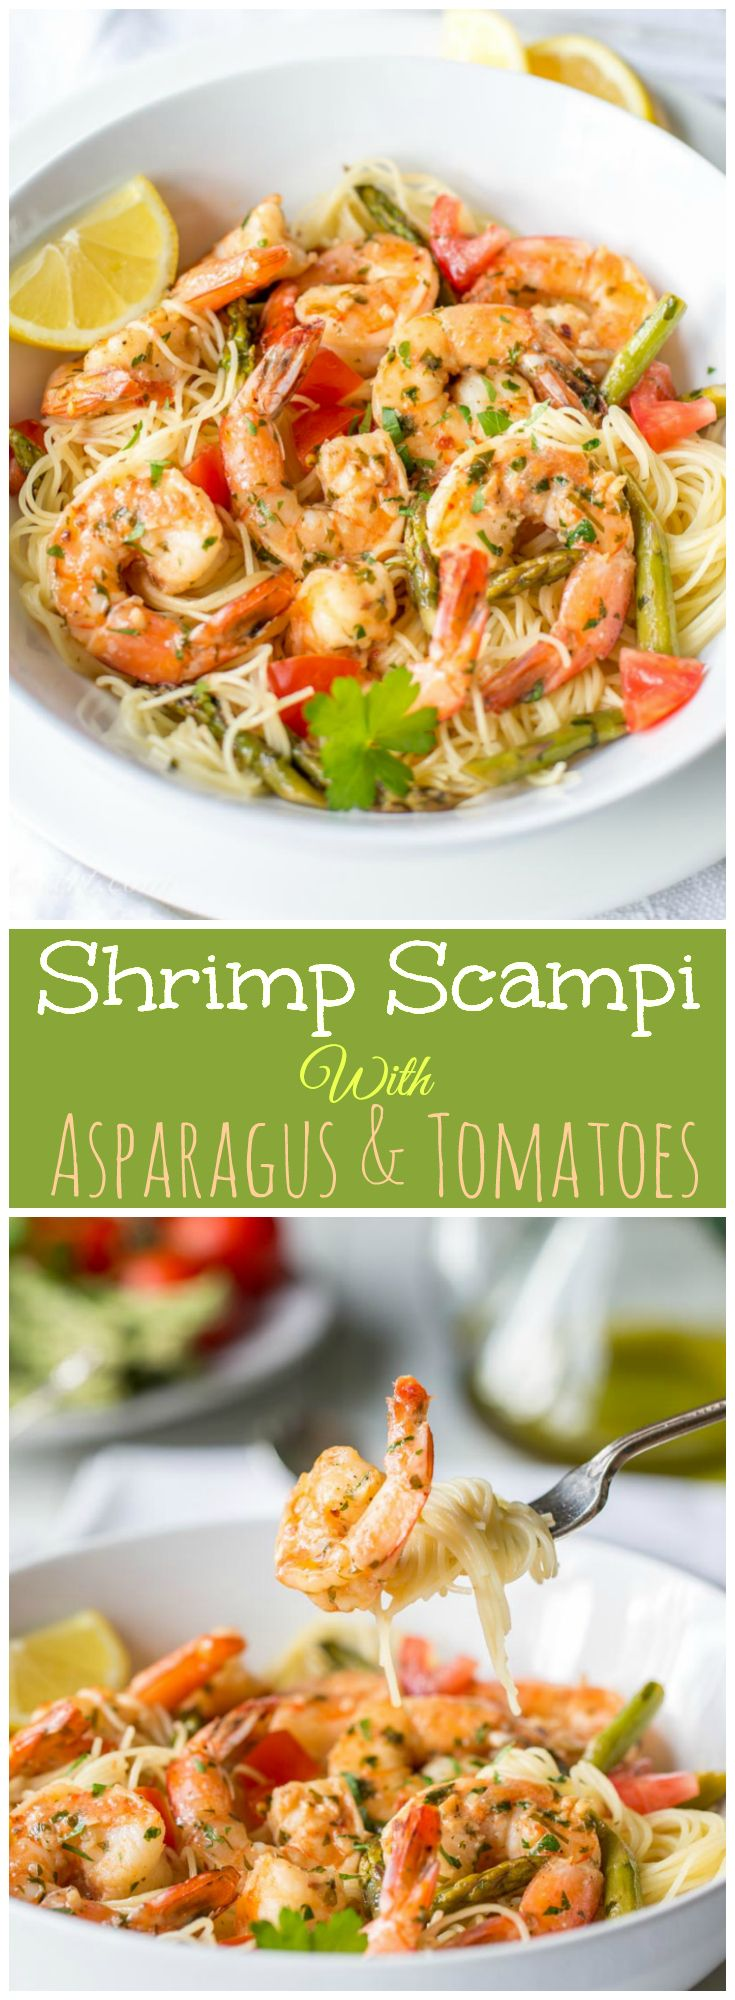 Shrimp Scampi with Asparagus & Tomatoes | You don't need a fancy Italian restaurant to enjoy a great bowl of Shrimp Scampi. Our homemade adaptation makes it easy to bring vegetables to the table along with the shrimp. @savingdessert